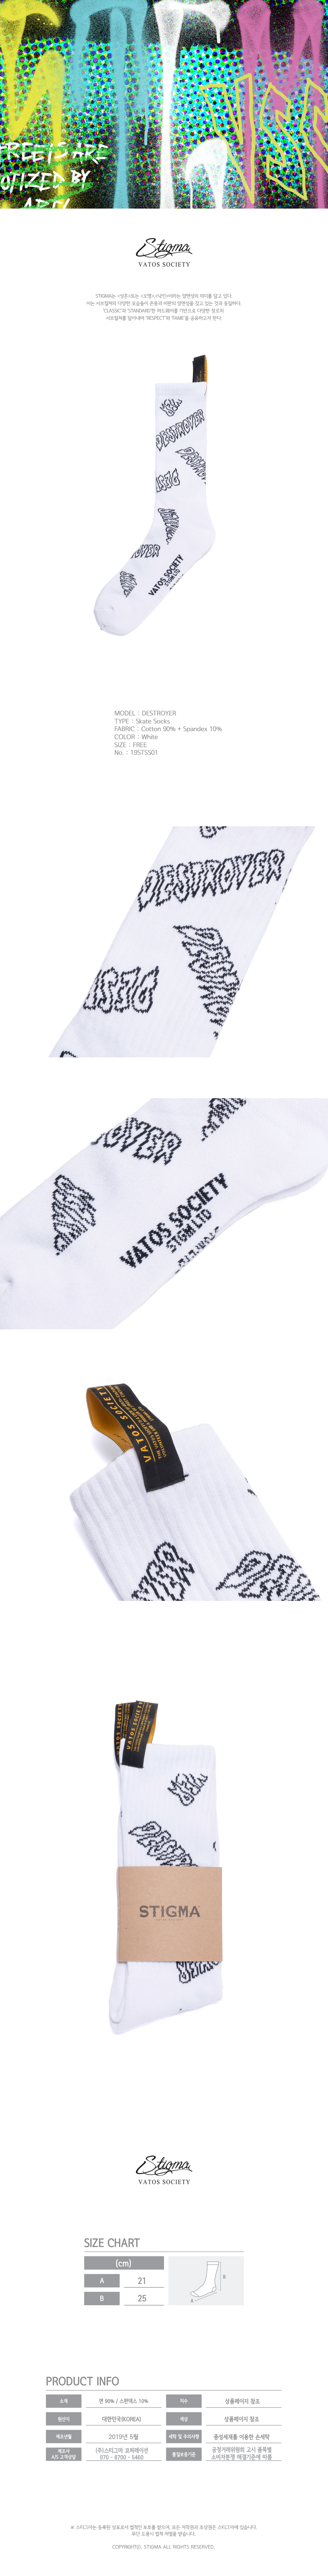 스티그마 STIGMA DESTROYER SKATE SOCKS WHITE